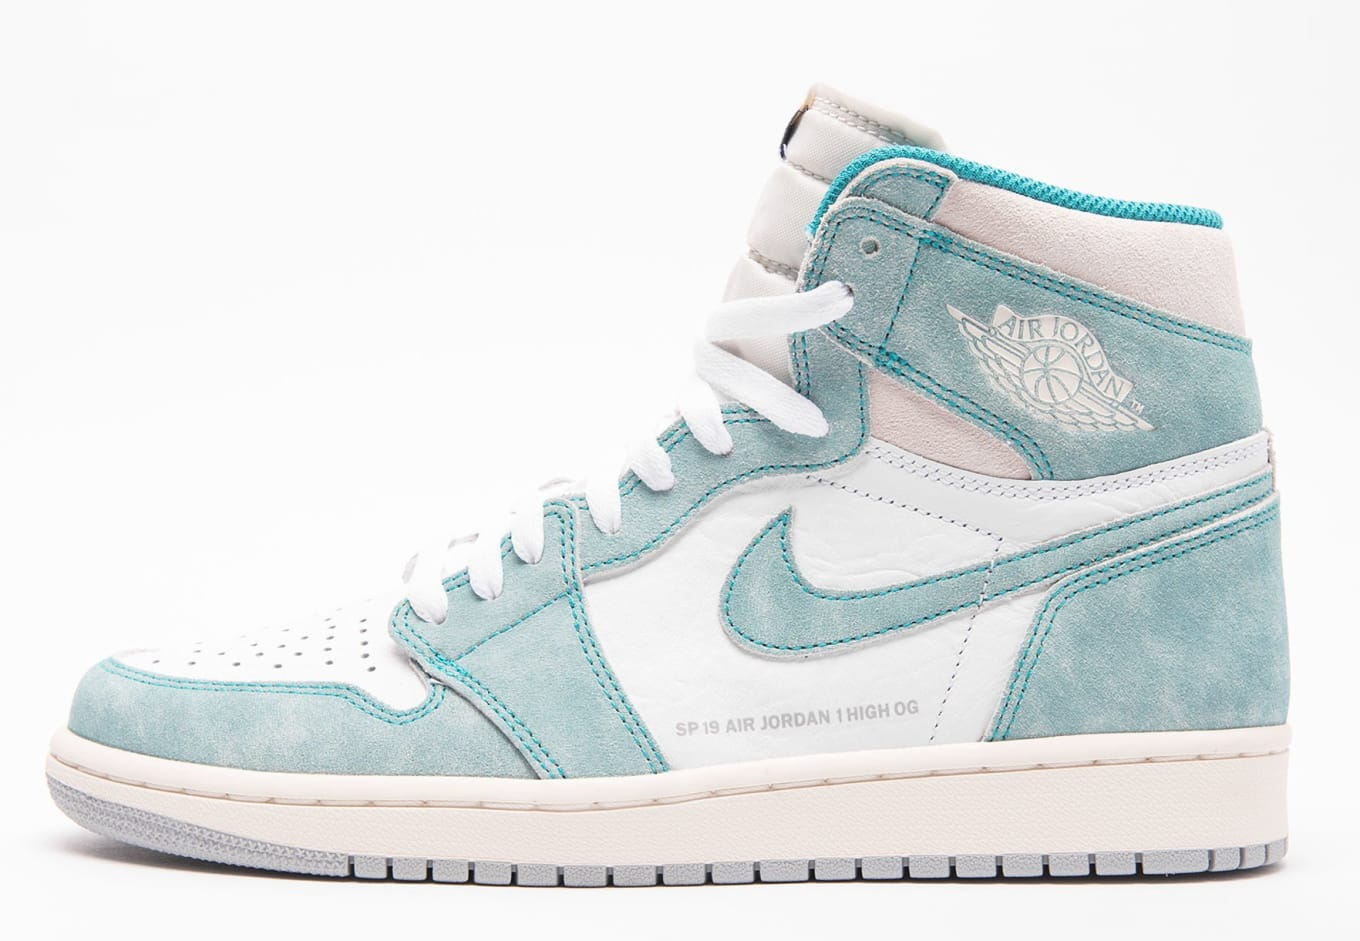 ea6dda09e73fe3 These Vintage-Inspired Air Jordan 1s Drop Next Month. Best look yet at the   Turbo Green  colorway.